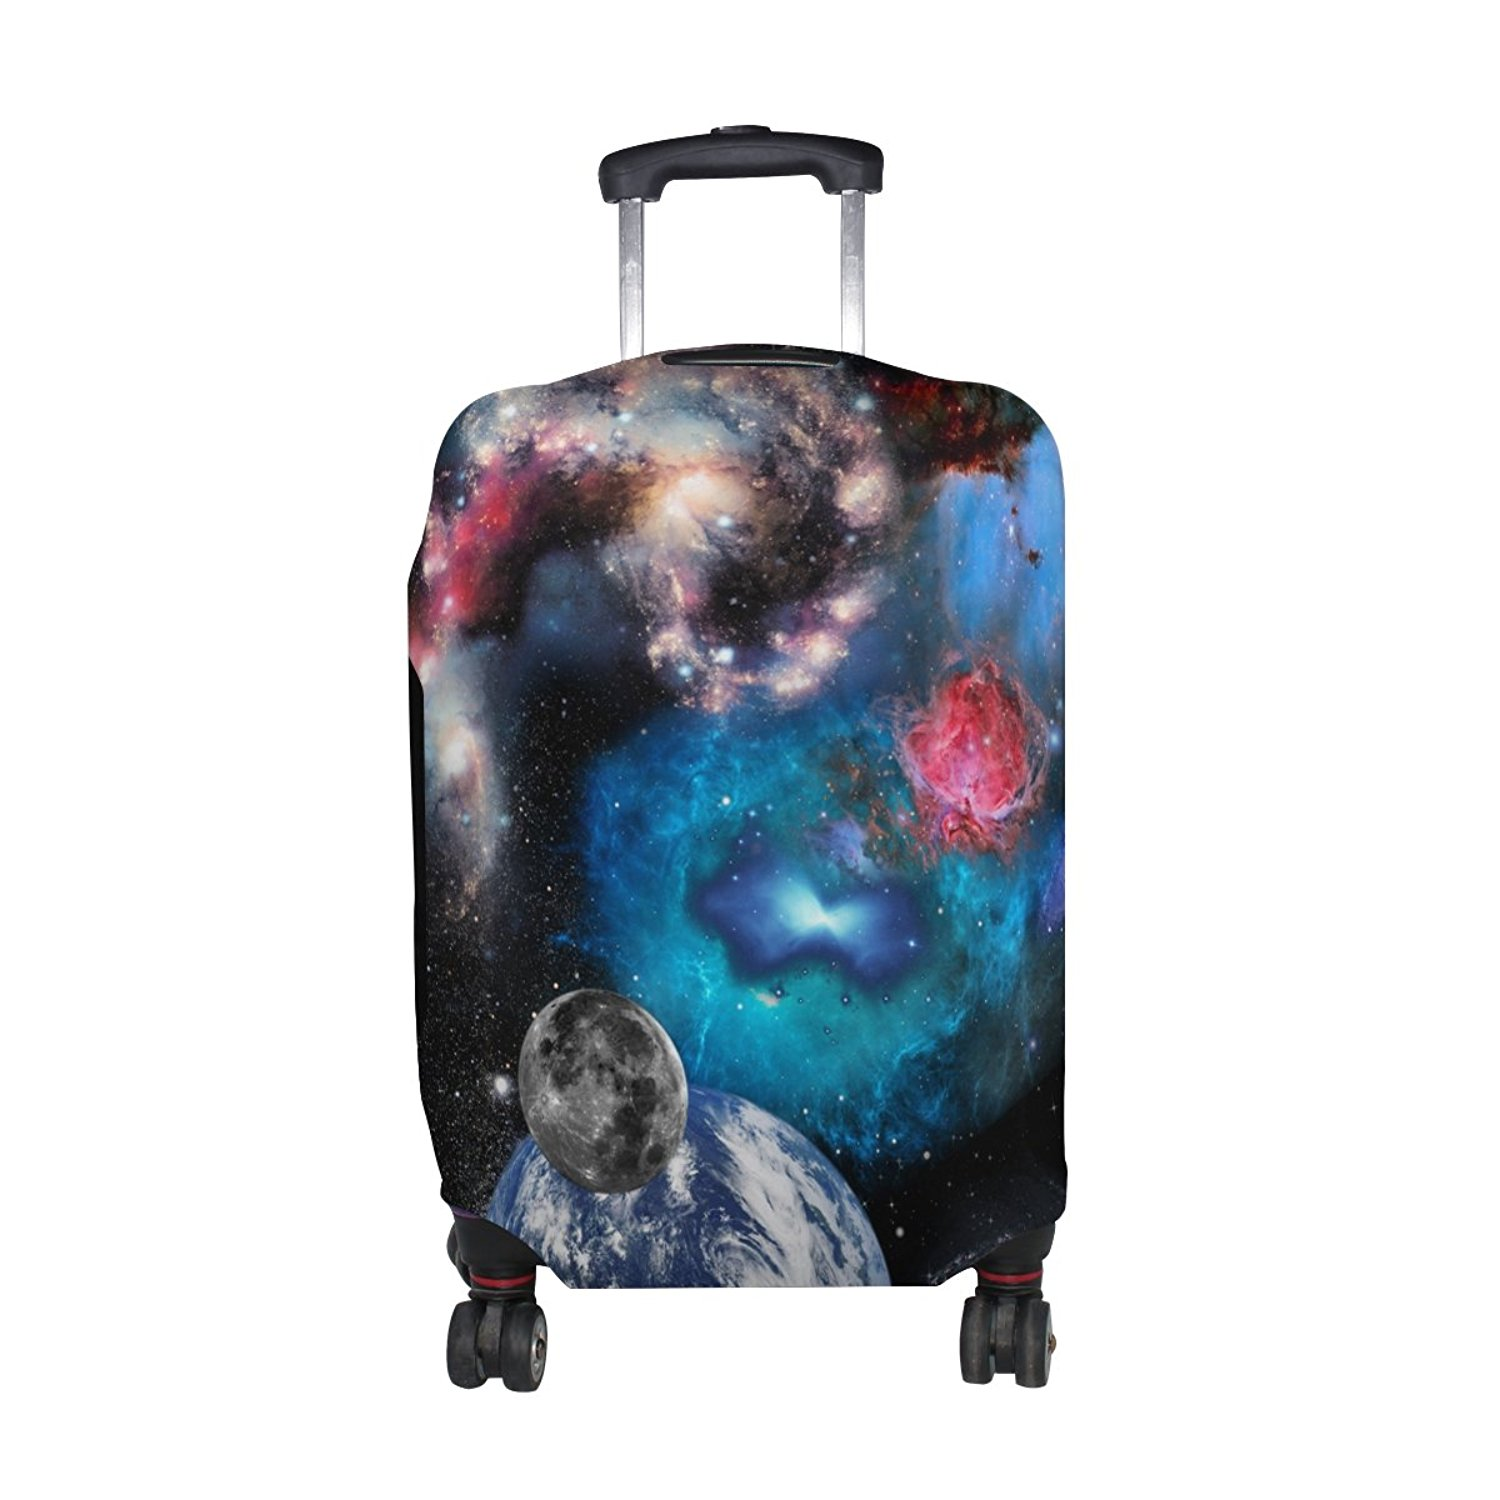 LEISISI Planets And Galaxies In Space Protector Cover Elastic Suitcase Cover Luggage Cover Protector M 23-26 inch